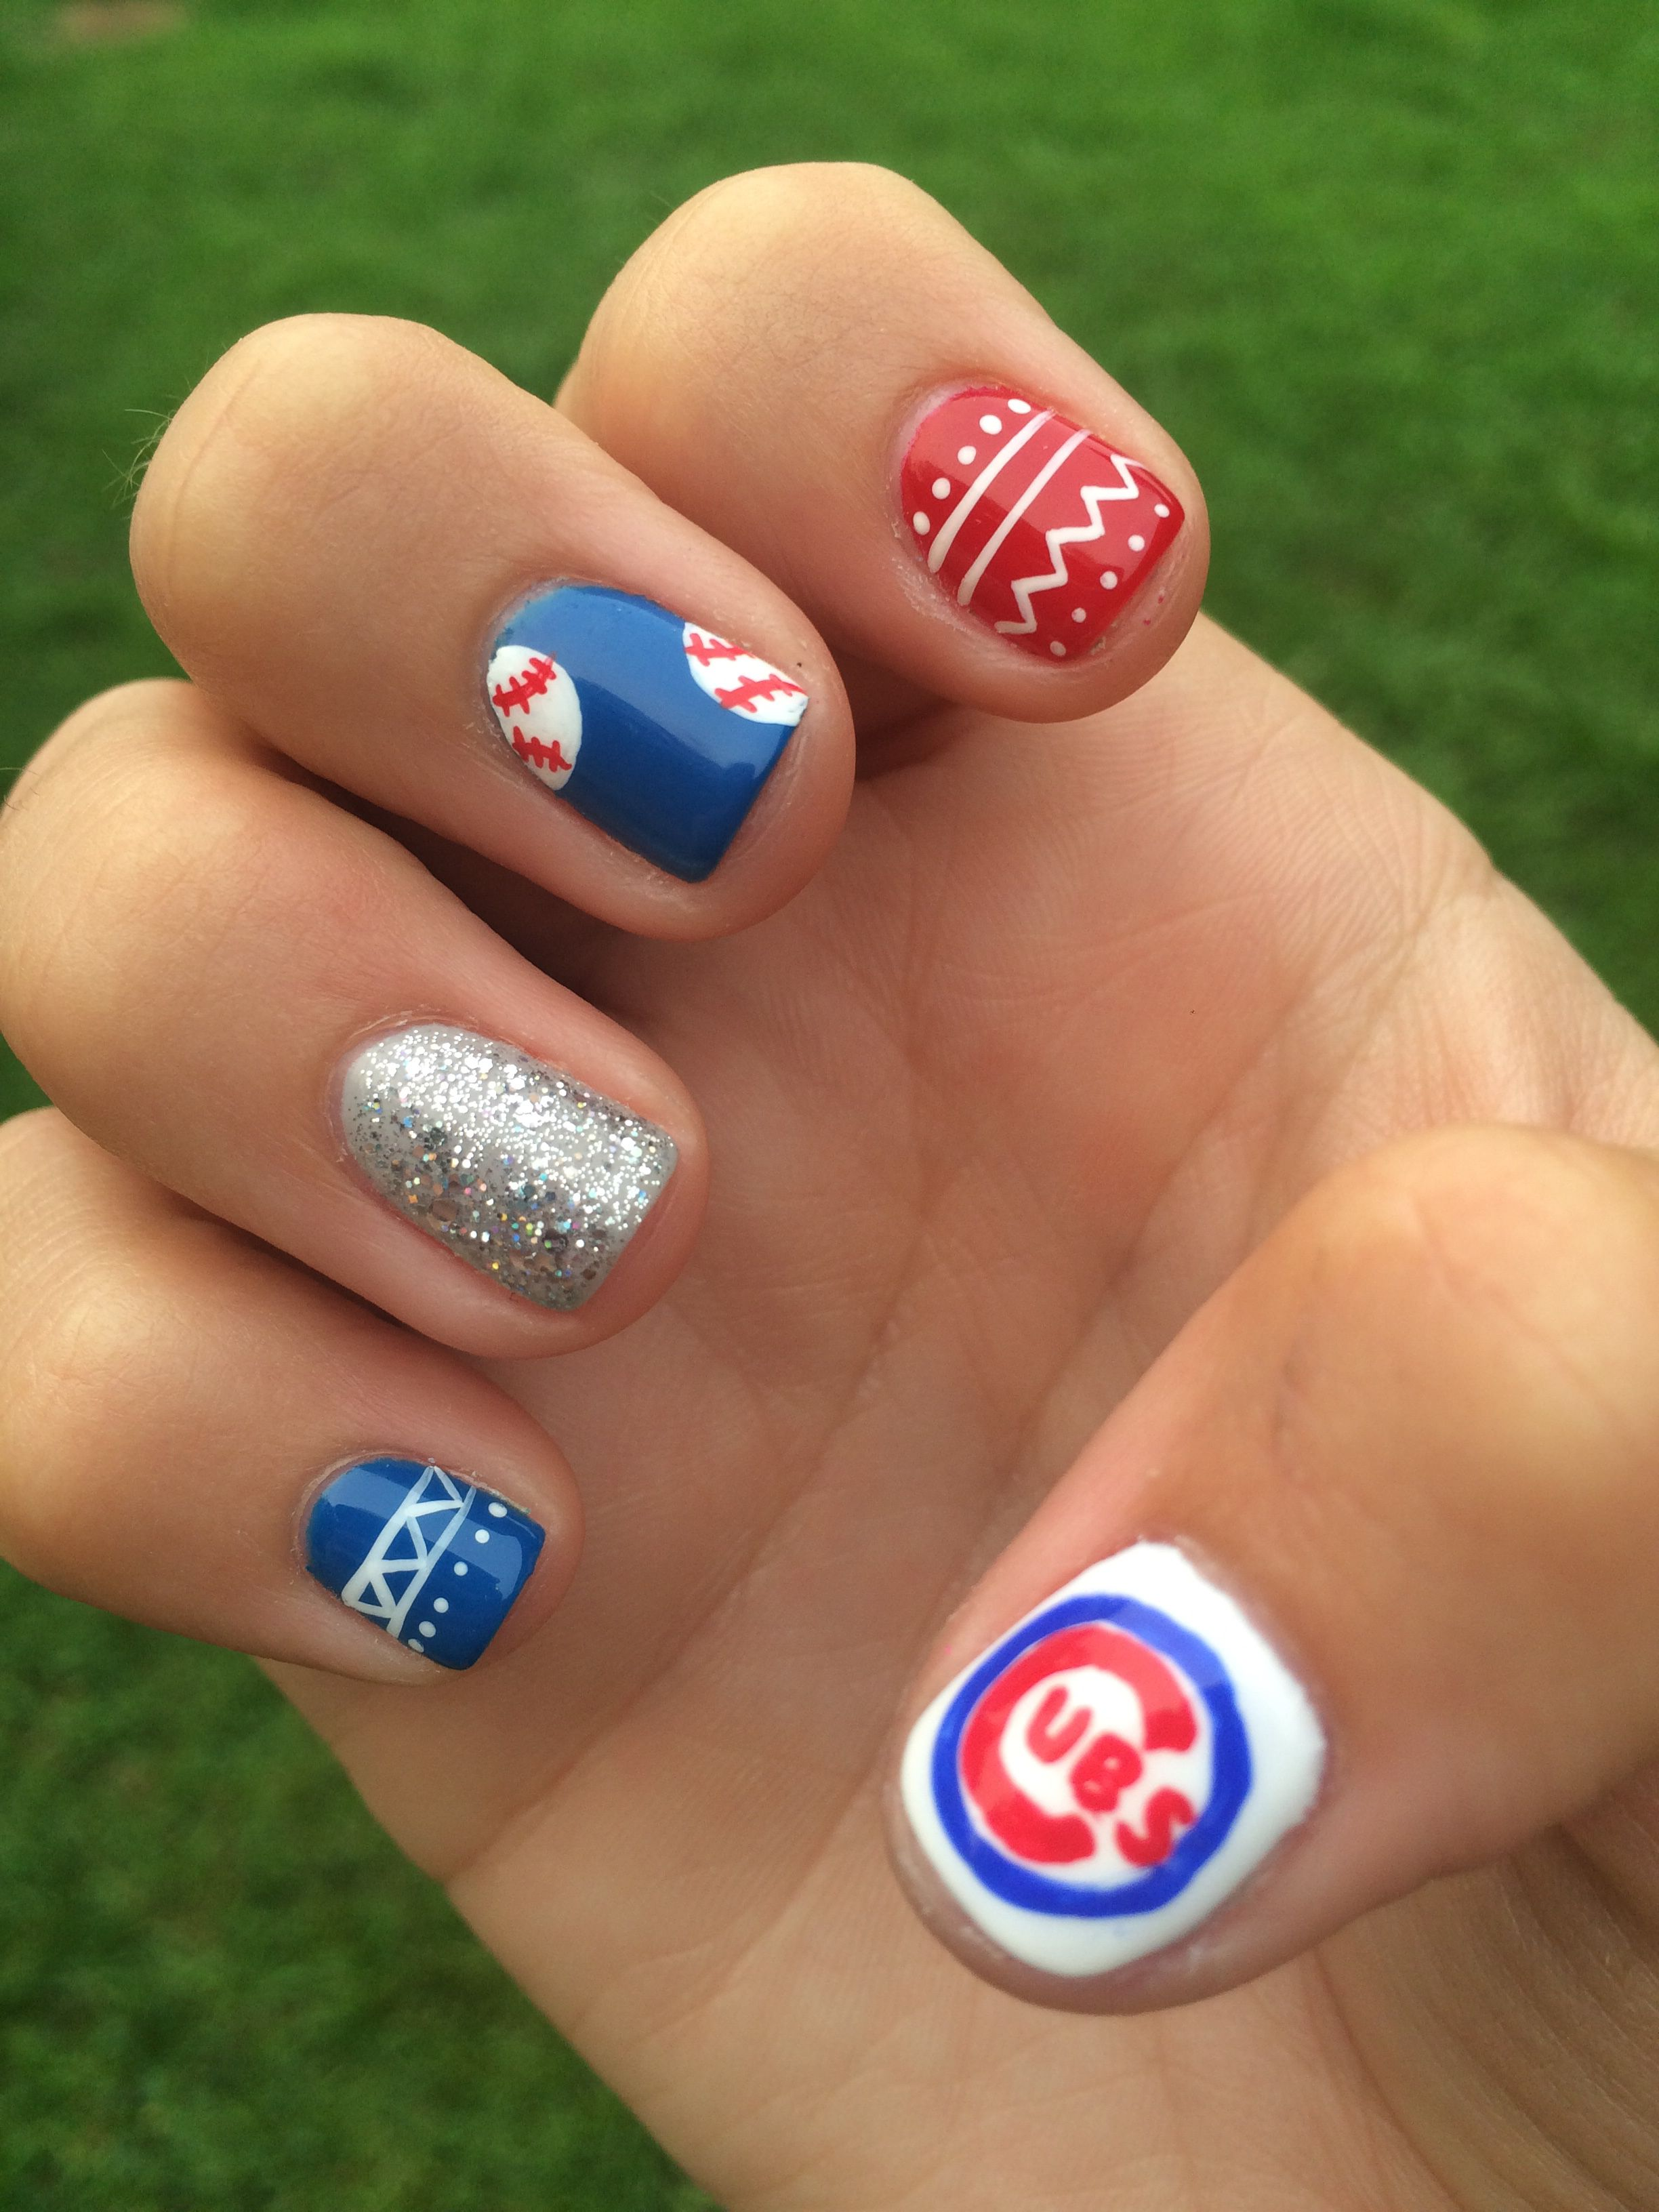 Chicago Cubs Nail Art #gocubs #cubsnails #chicagocubs Nails In 2018